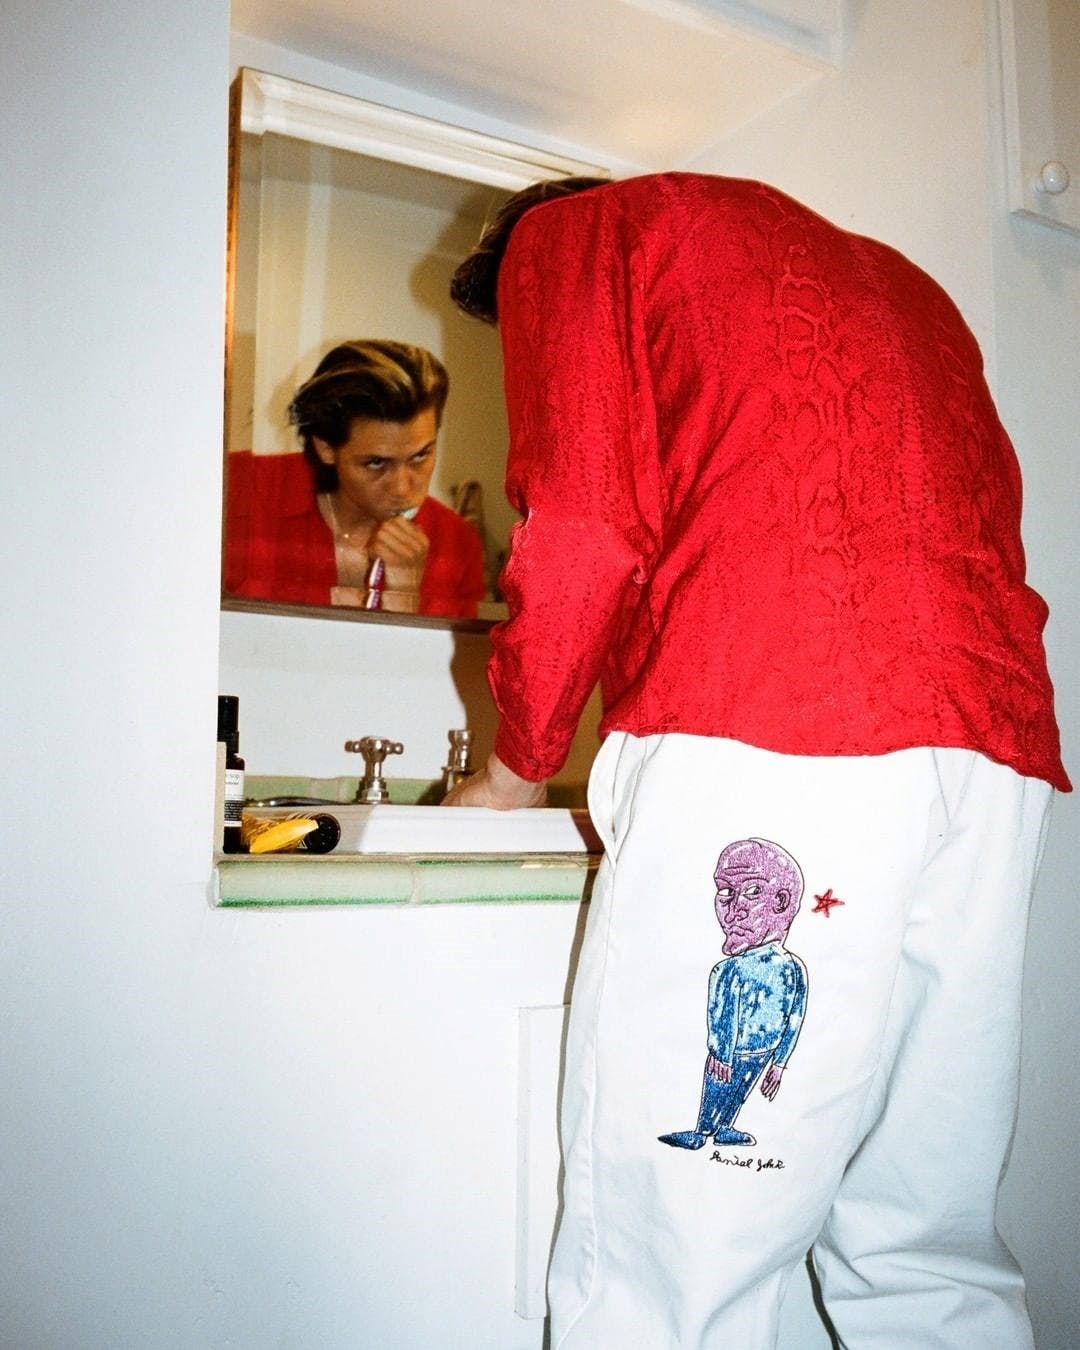 Supreme capsule collection featuring artwork by legendary musician Daniel Johnston - White pants.